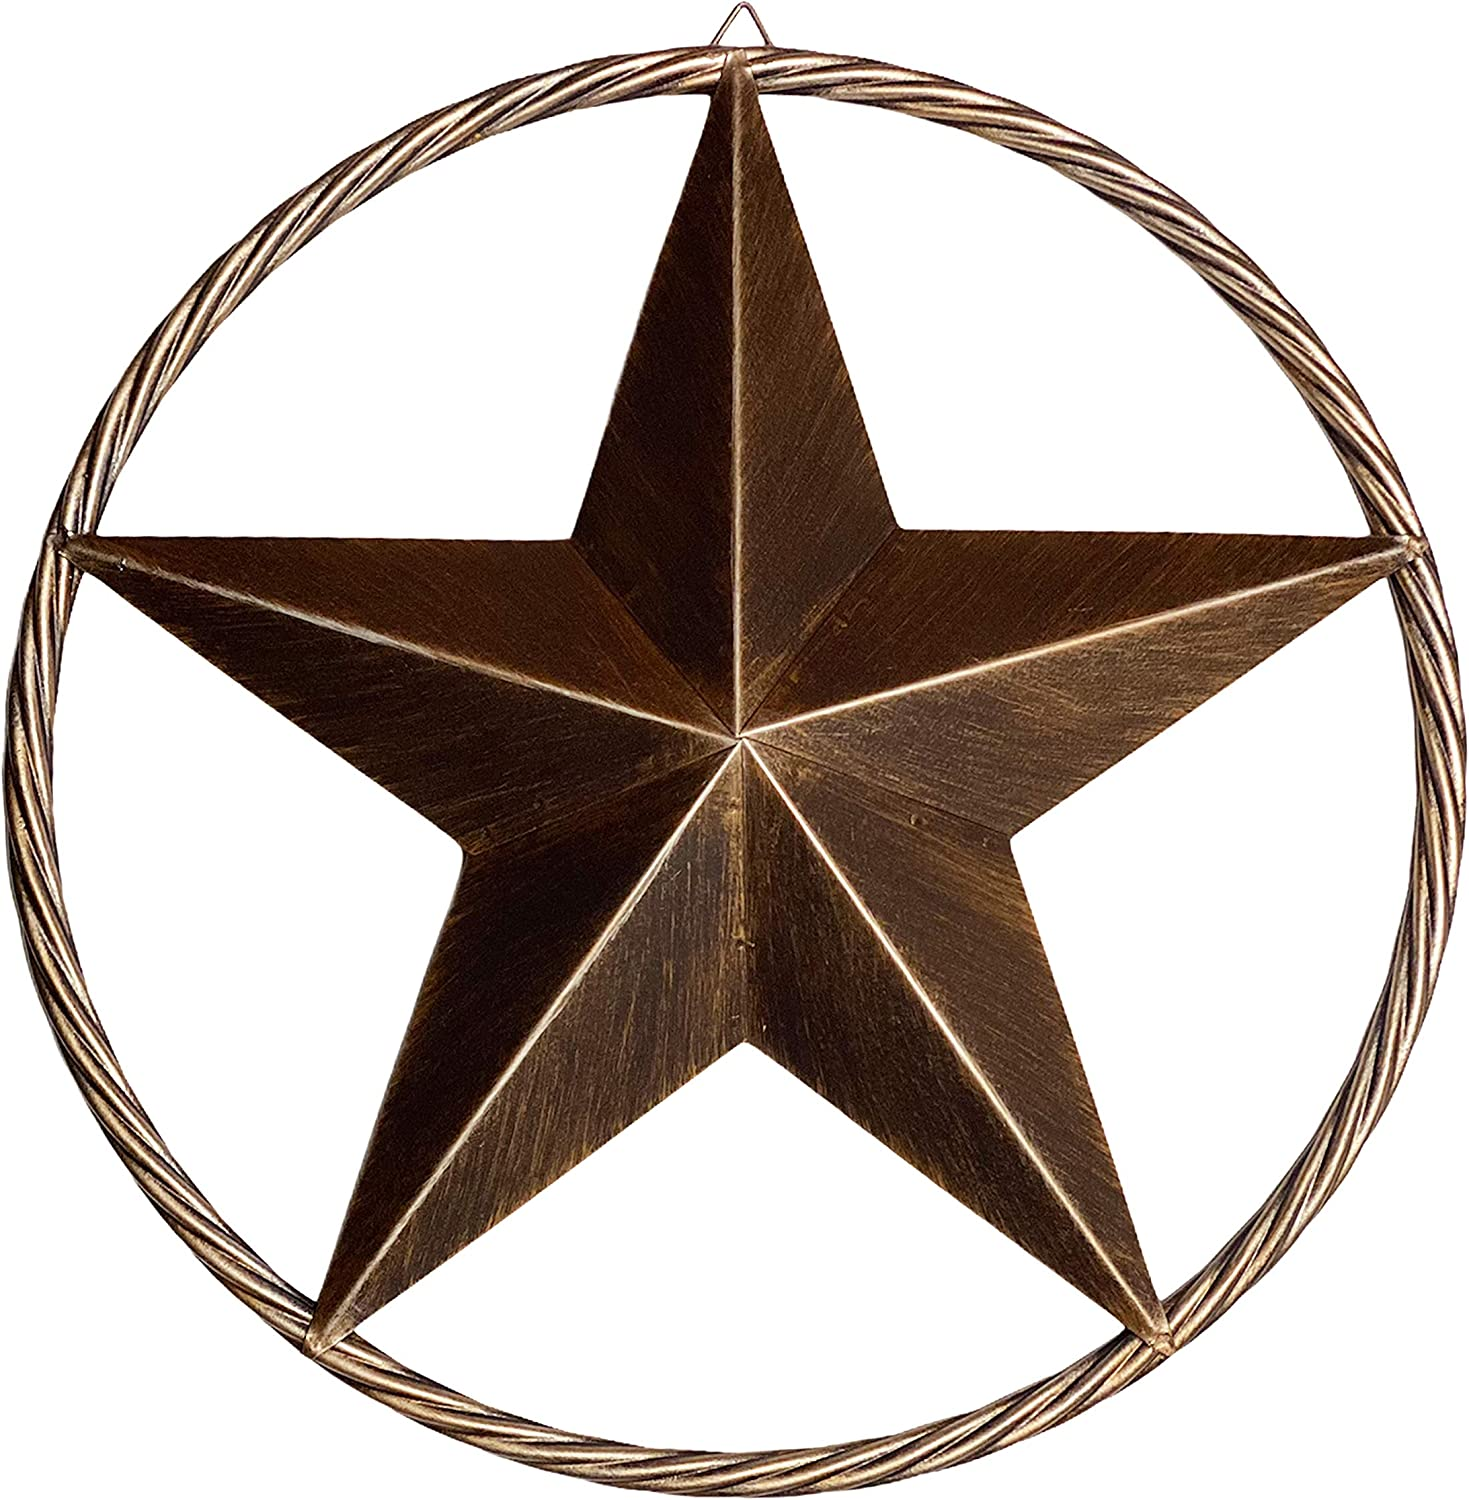 Urbalabs 12 Metal Barn Star Western Decor Twisted Rope Ring Rustic Wall Decor Texas Lone Star Dark Brown Metal Texas Home Wall Decor Indoor Outdoor Western Decor for Home